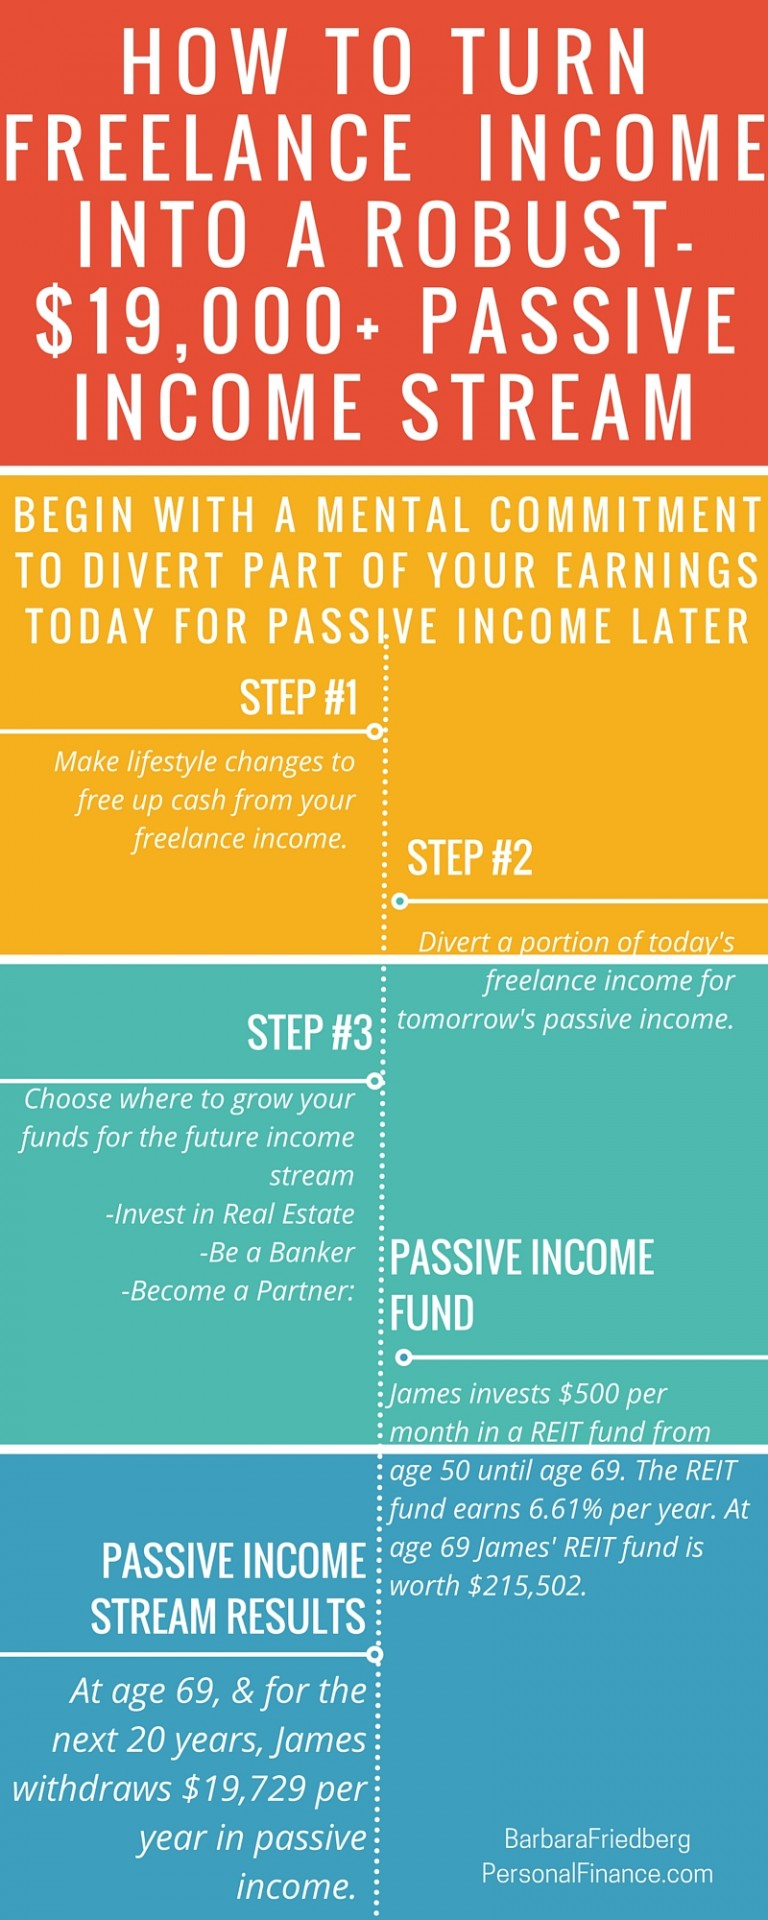 How freelancers can turn freelance income into a robust $19,000+ passive income stream